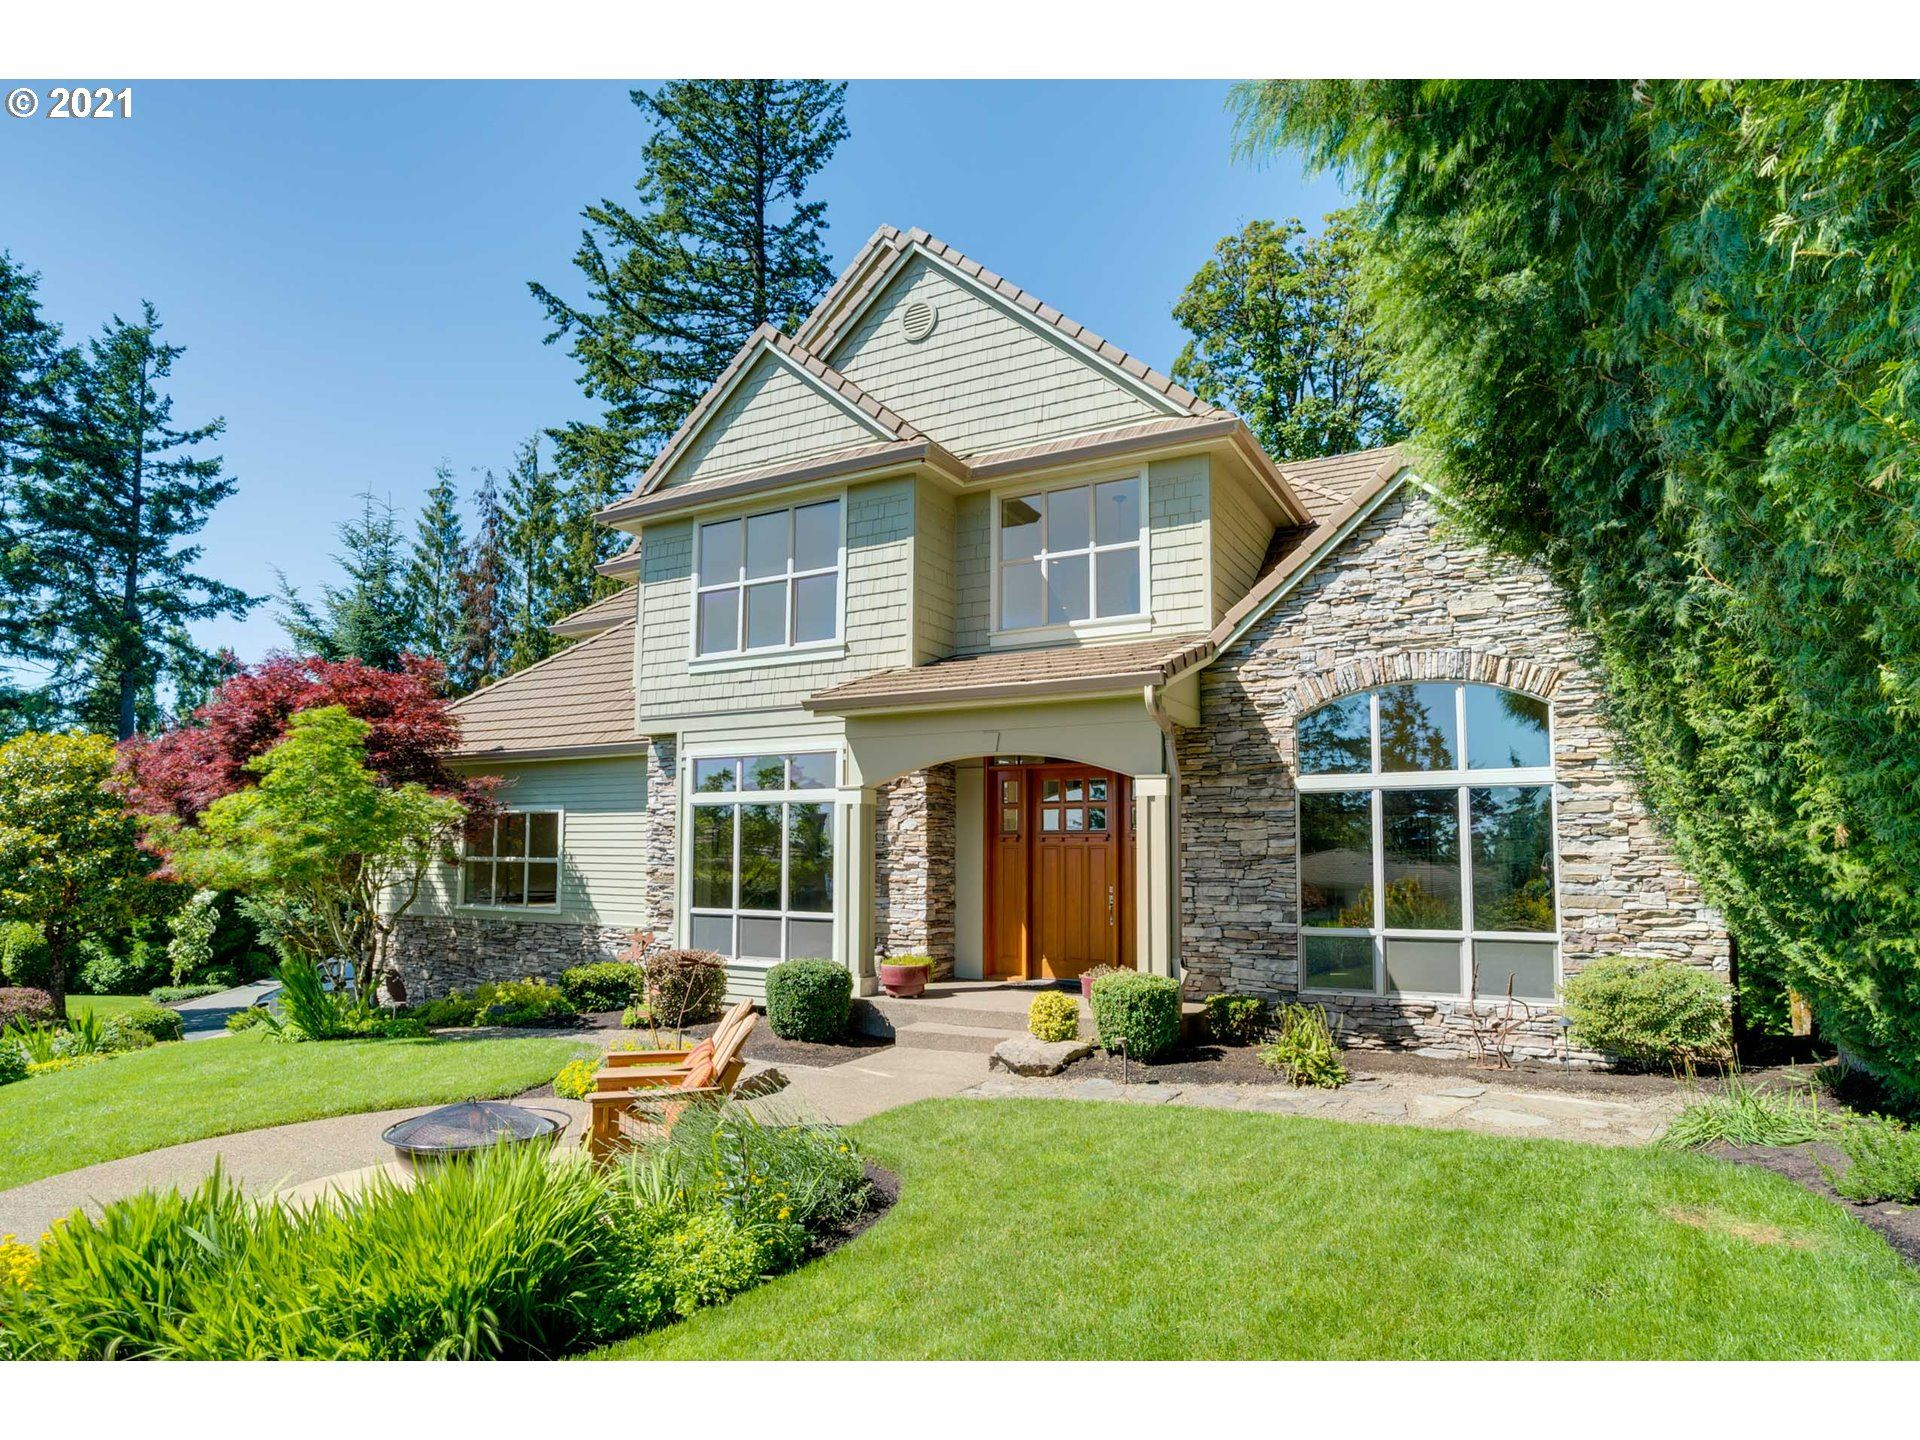 376 NW 81st PL, Portland, OR 97229 - MLS#: 21175095